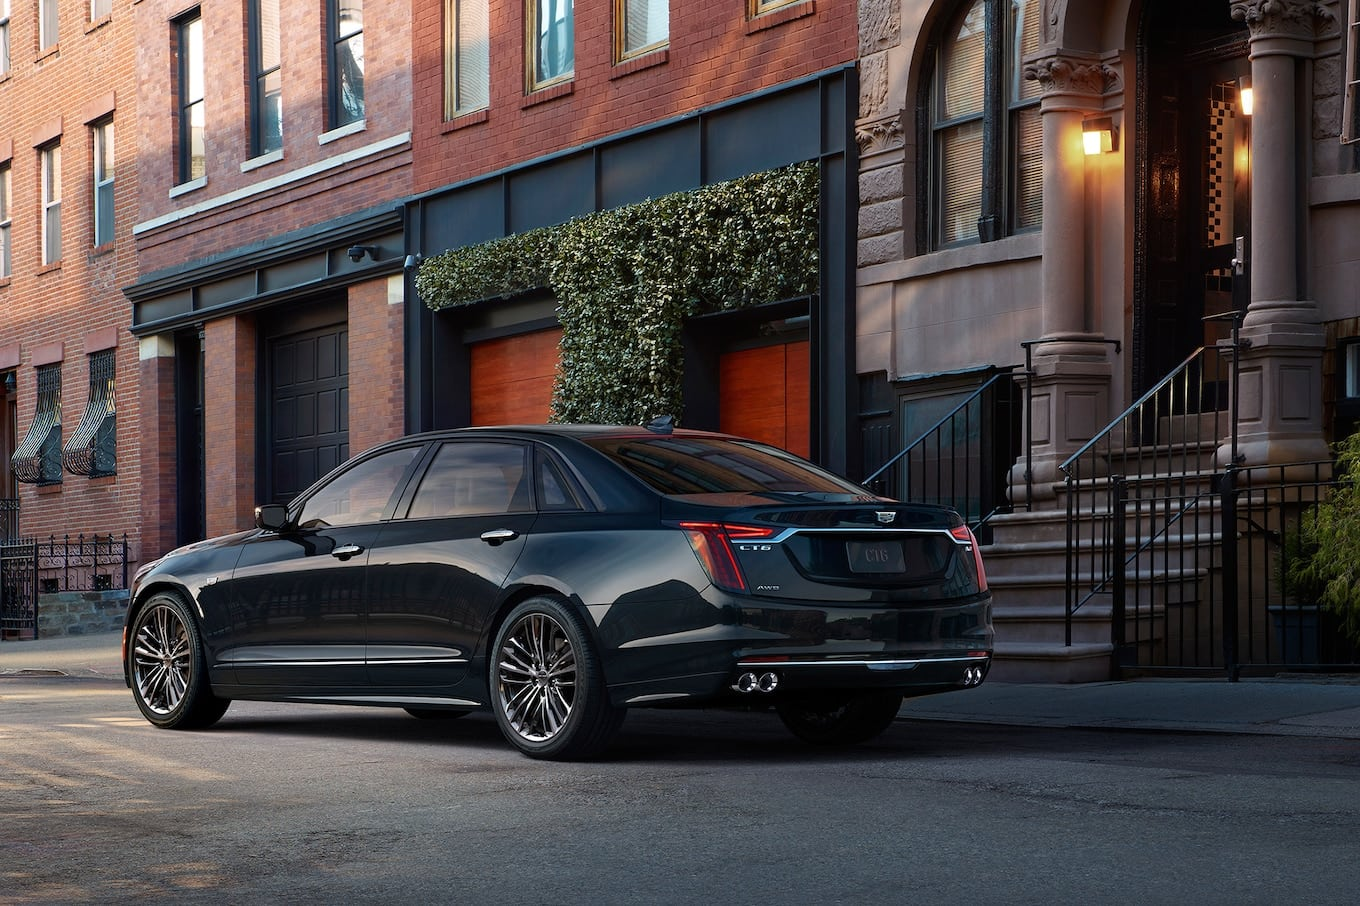 2019-Cadillac-CT6-V-Sport-rear-three-quarter